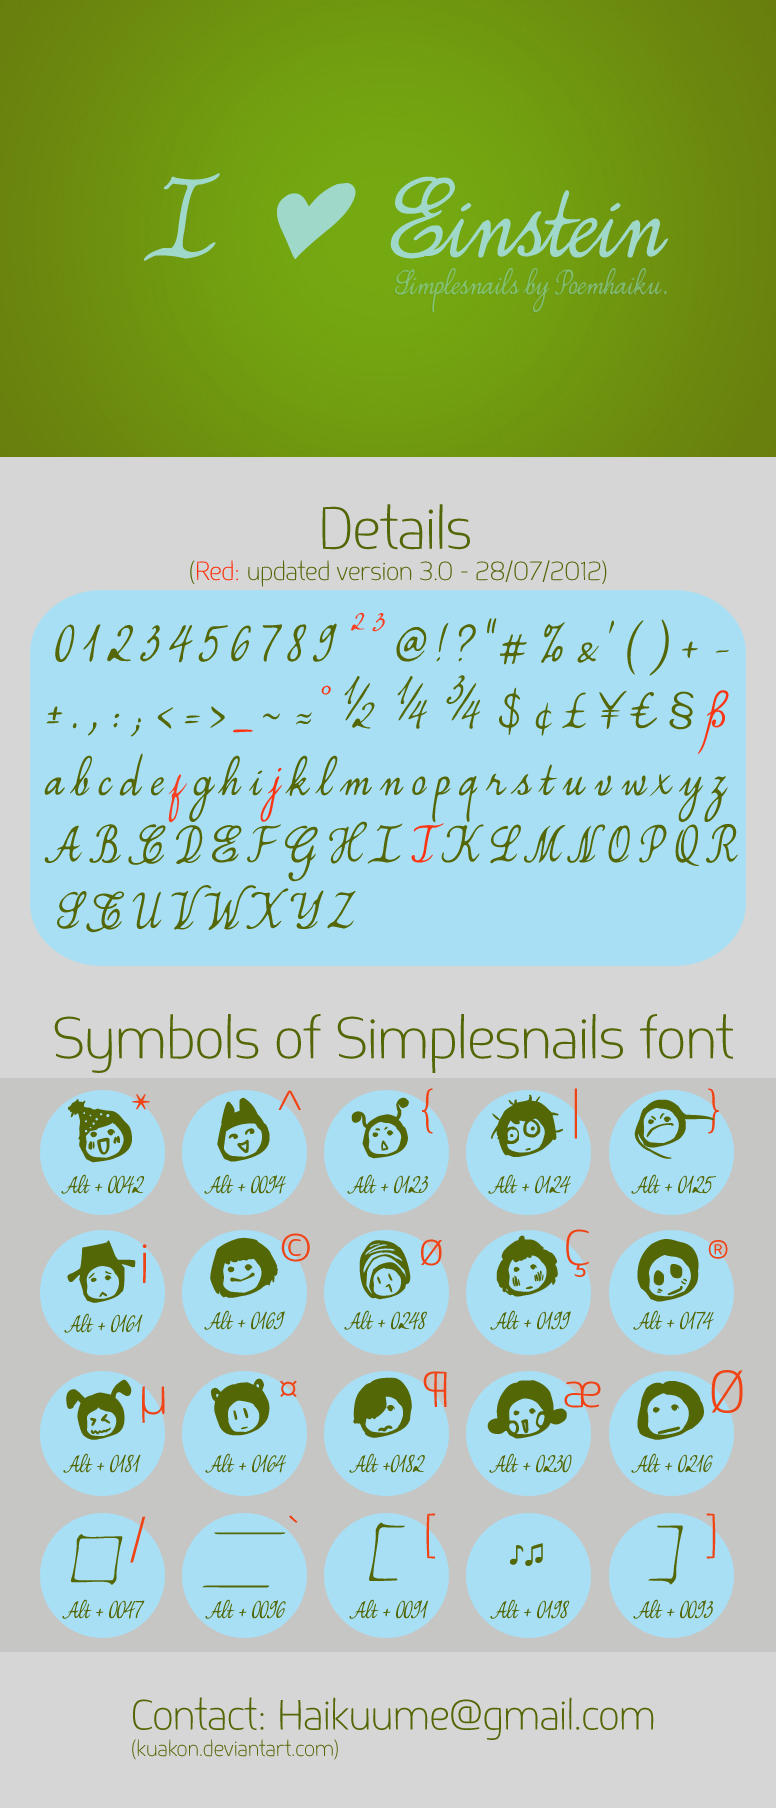 Simplesnails Font update ver 2.0 by Poemhaiku